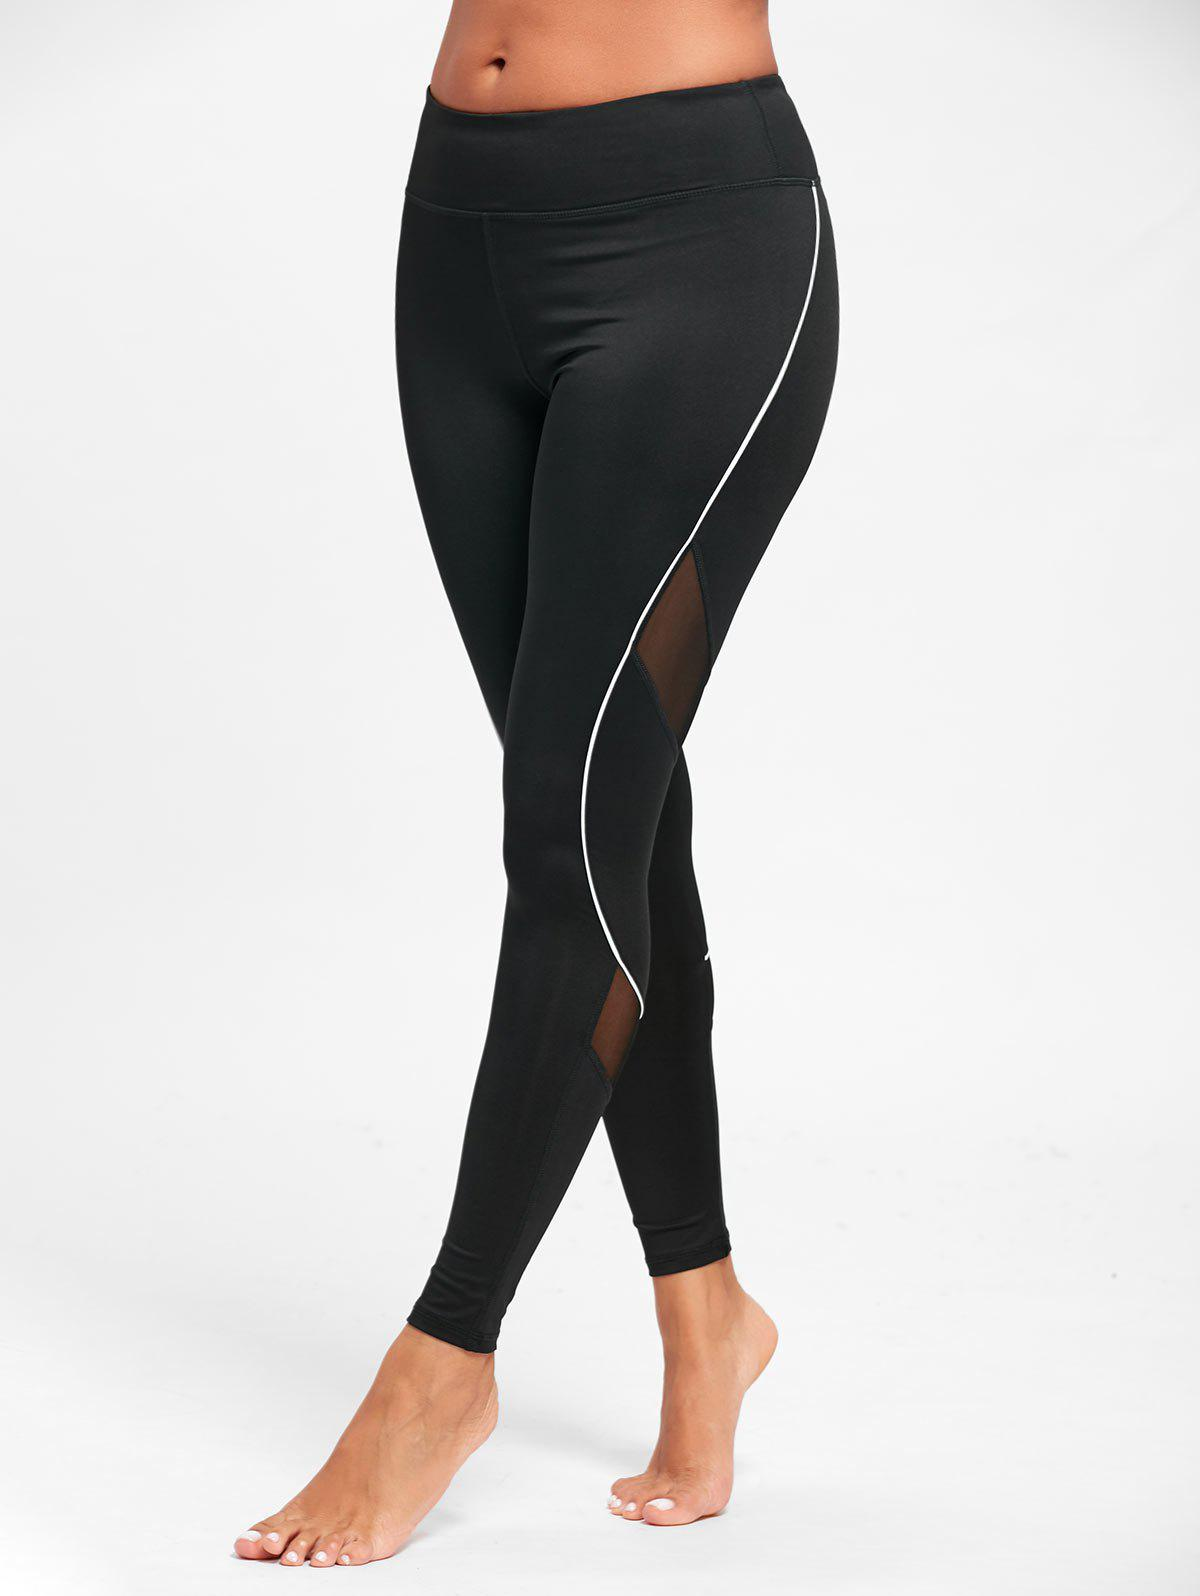 Midi Waist Contrast Tall Leggings for Sports - BLACK L